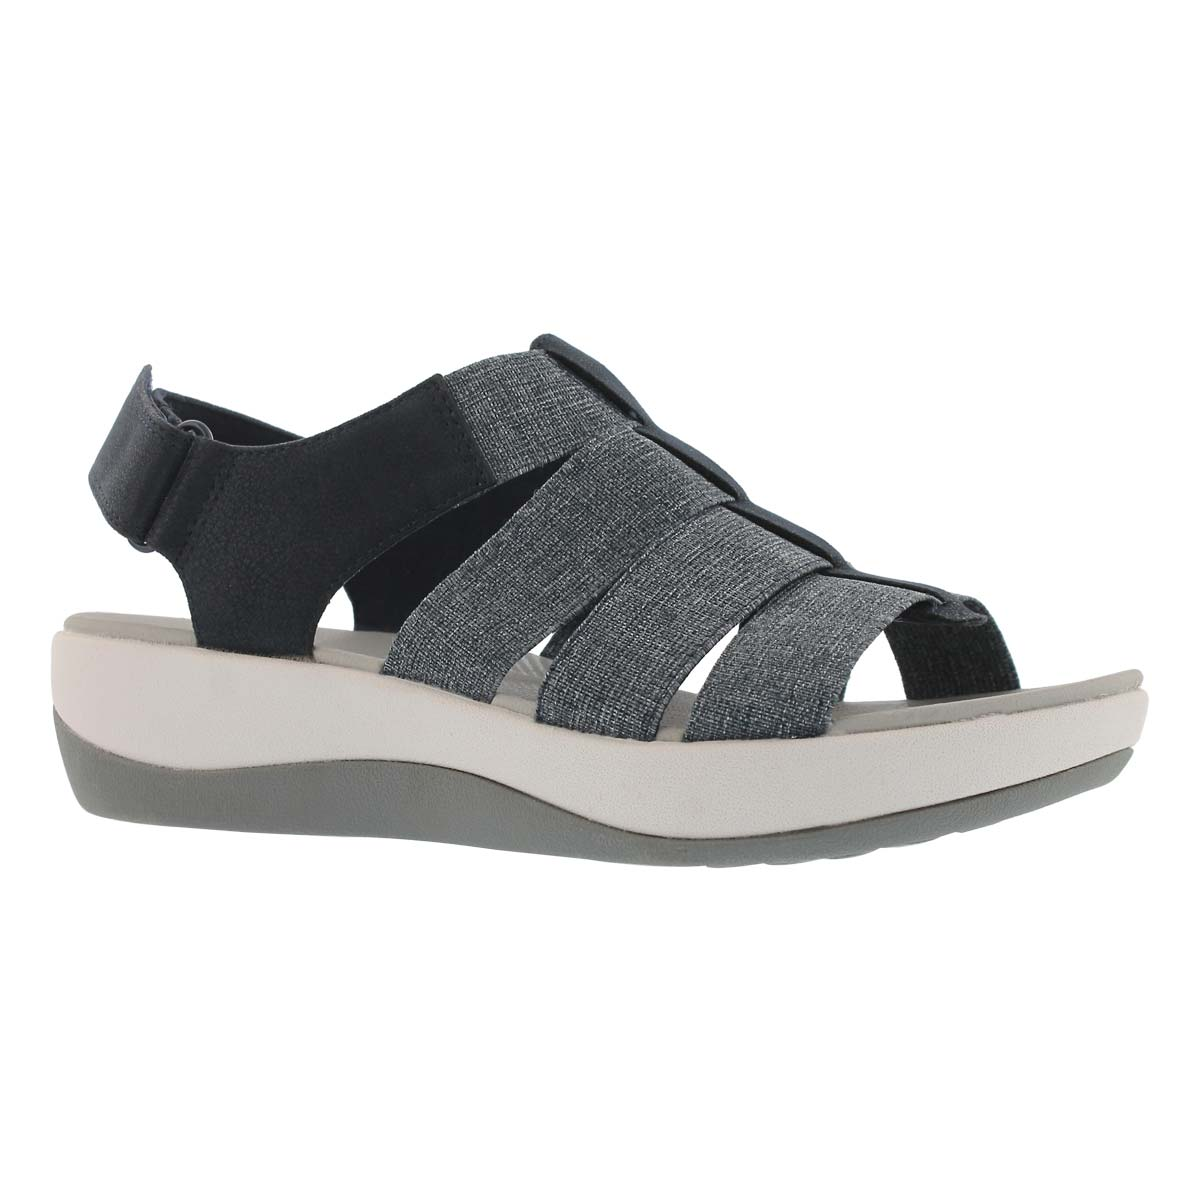 Women's ARLA SHAYLIE nvy casual wedge sandals